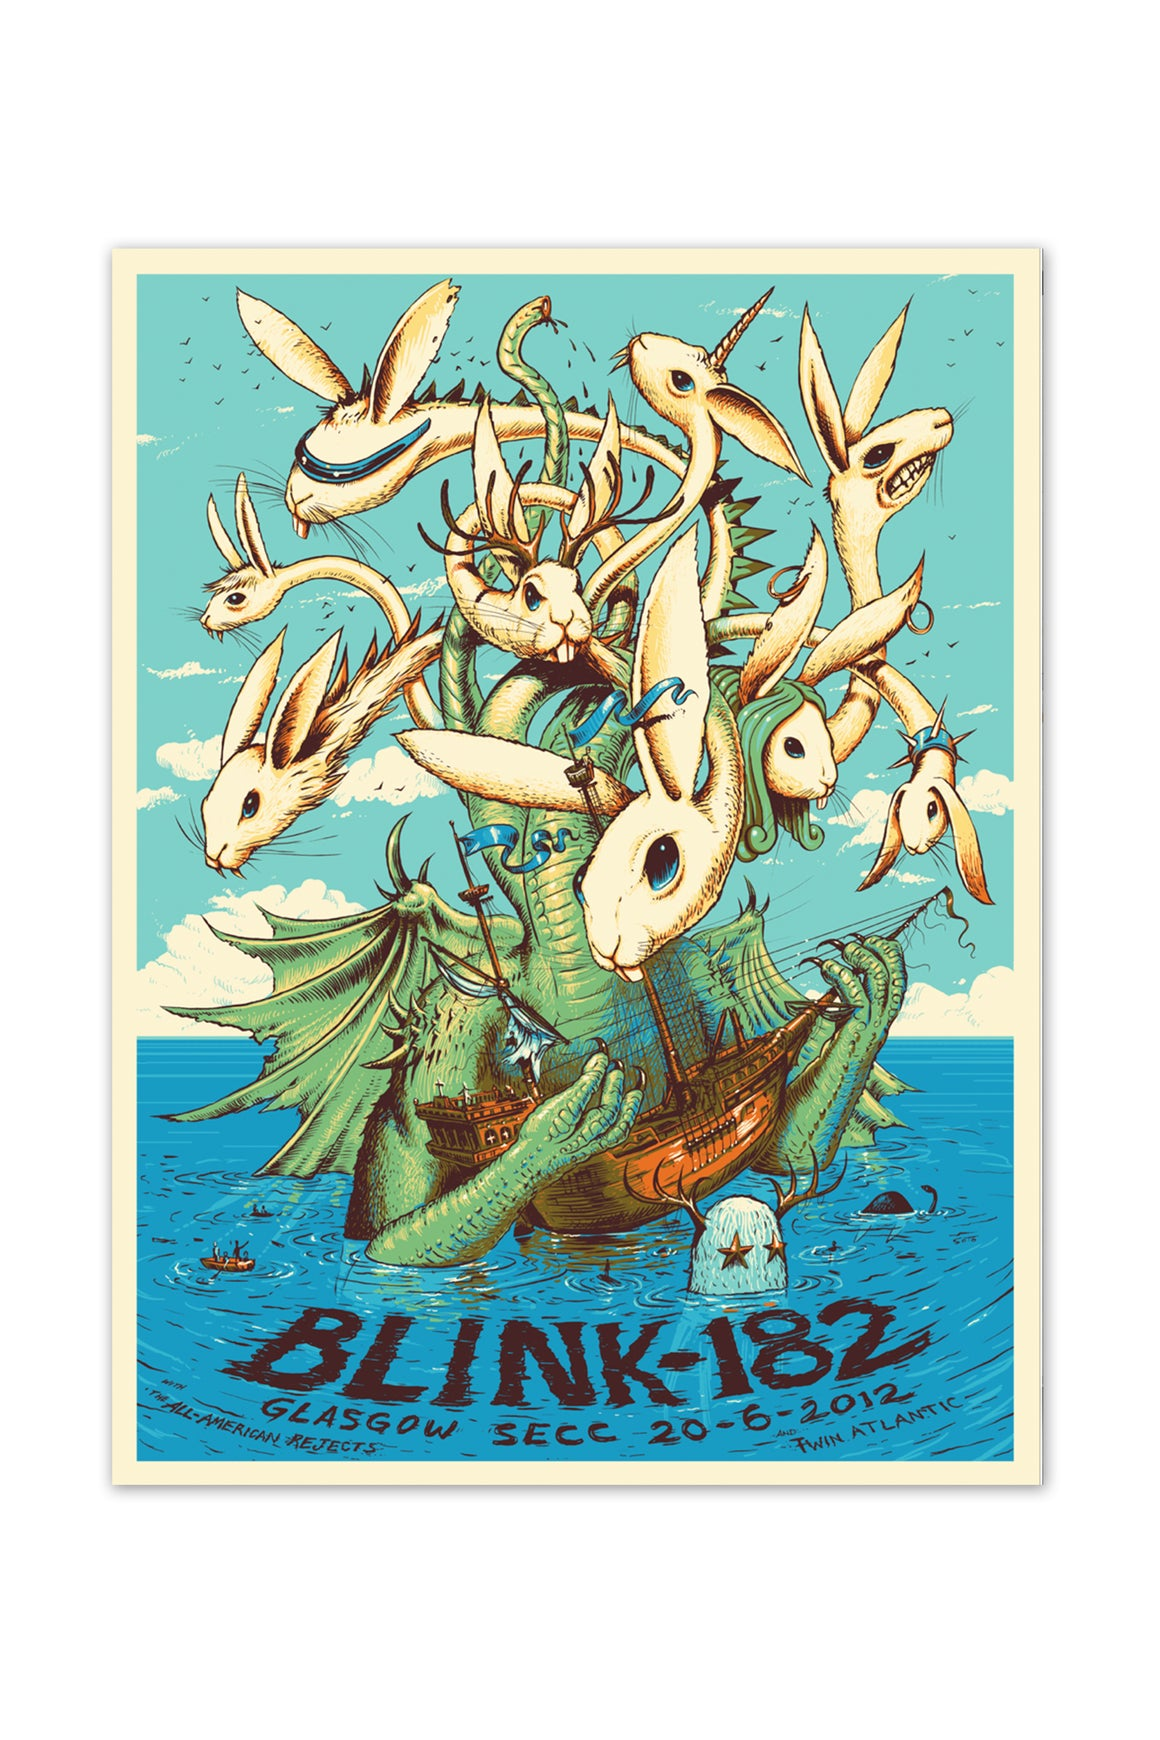 blink-182 6/20/2012 Glasgow, Scotland Event Poster